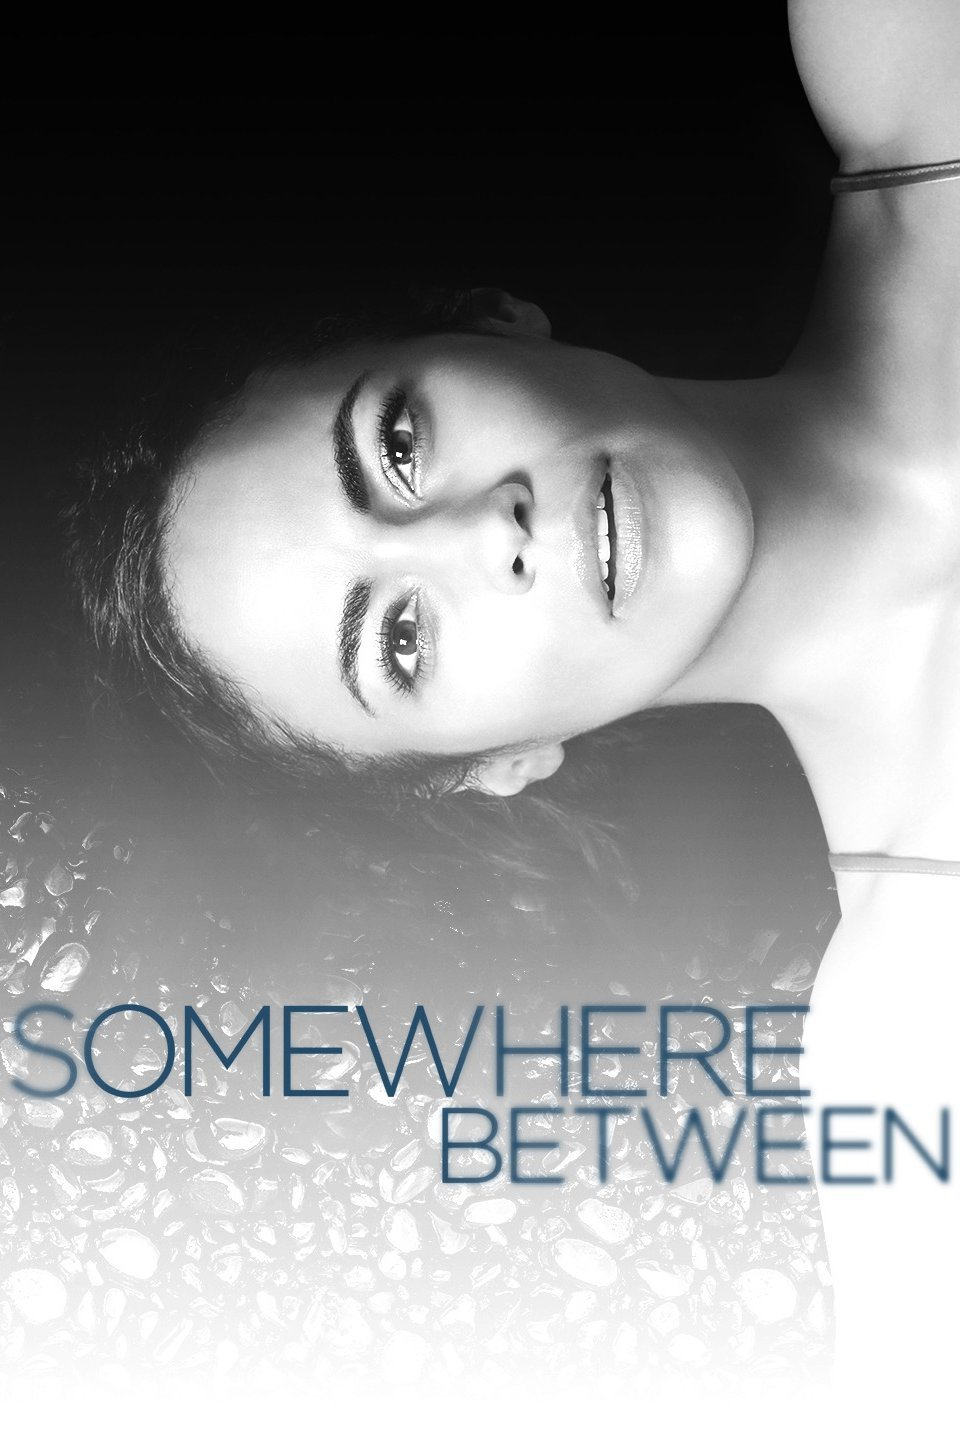 Somewhere Between Season 1 Episode 6 HDTV Micromkv